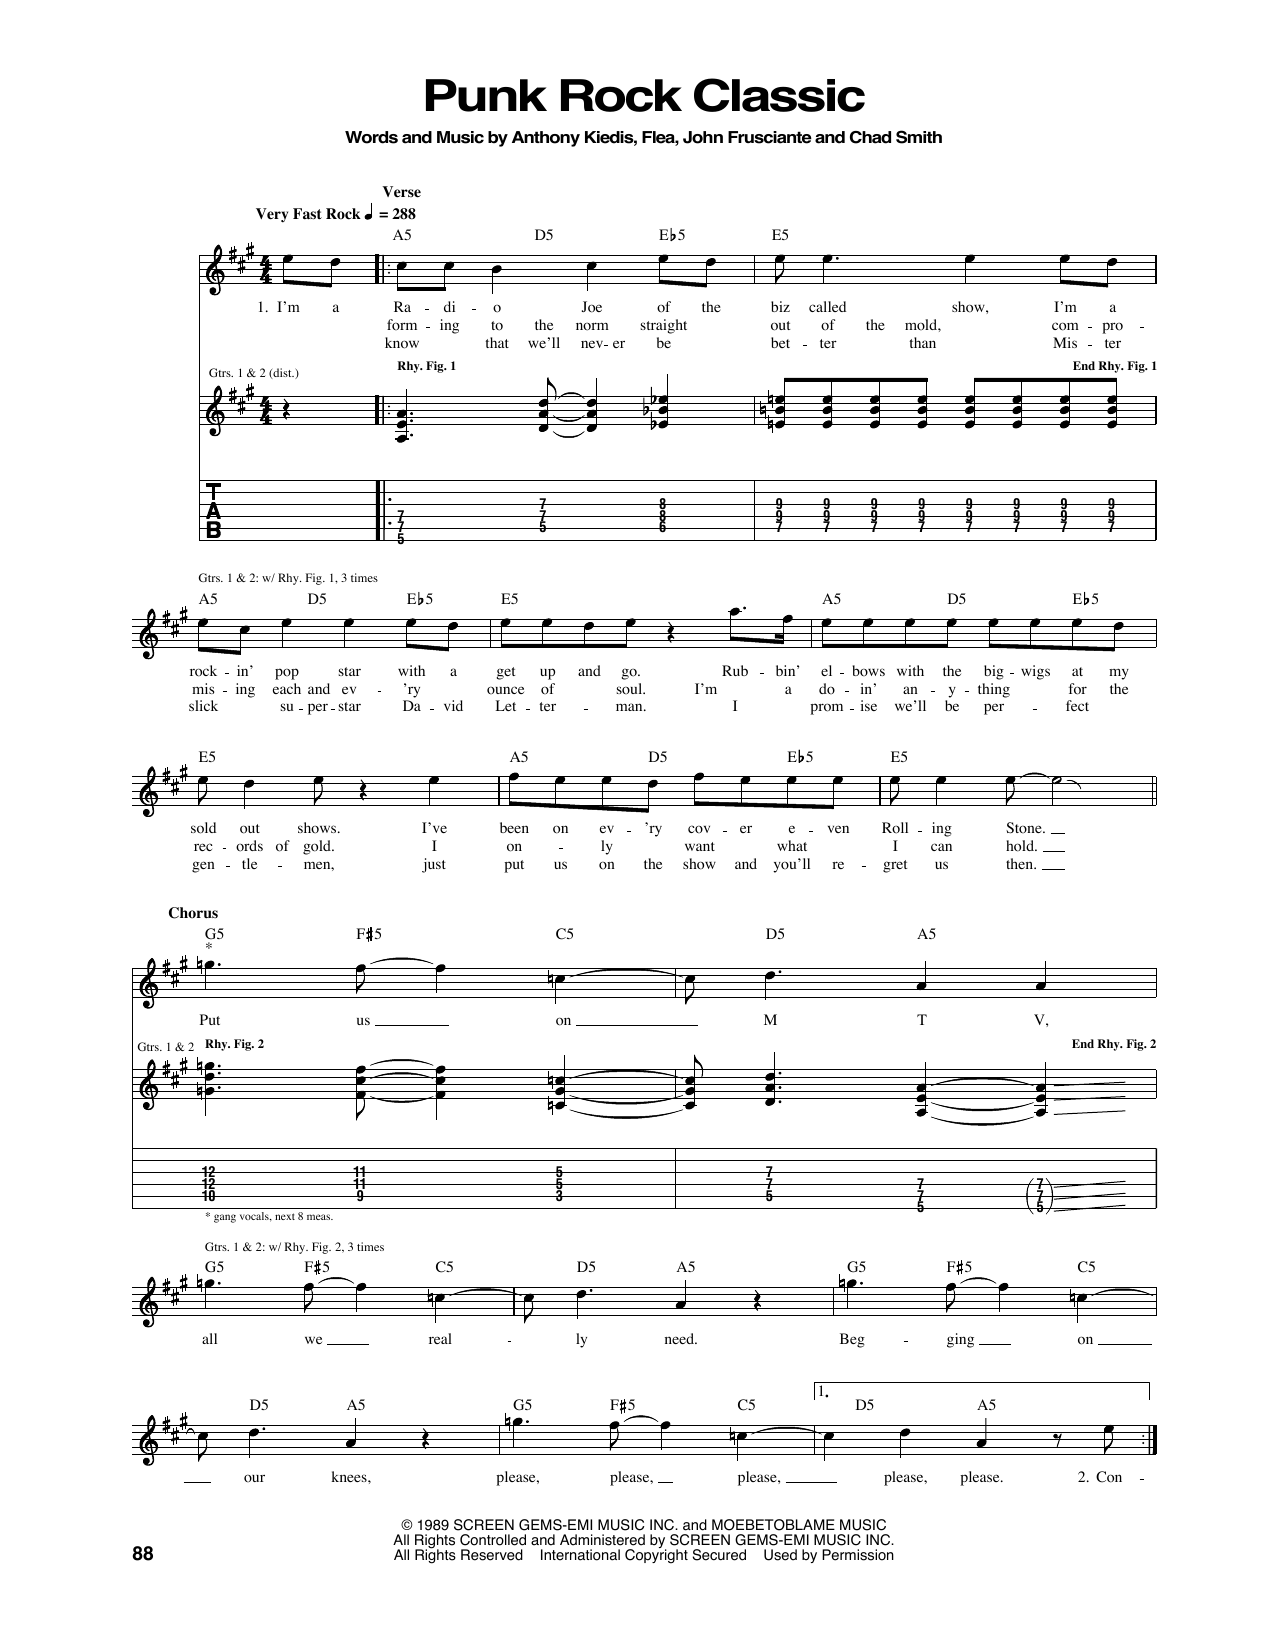 Red Hot Chili Peppers Punk Rock Classic sheet music notes and chords. Download Printable PDF.